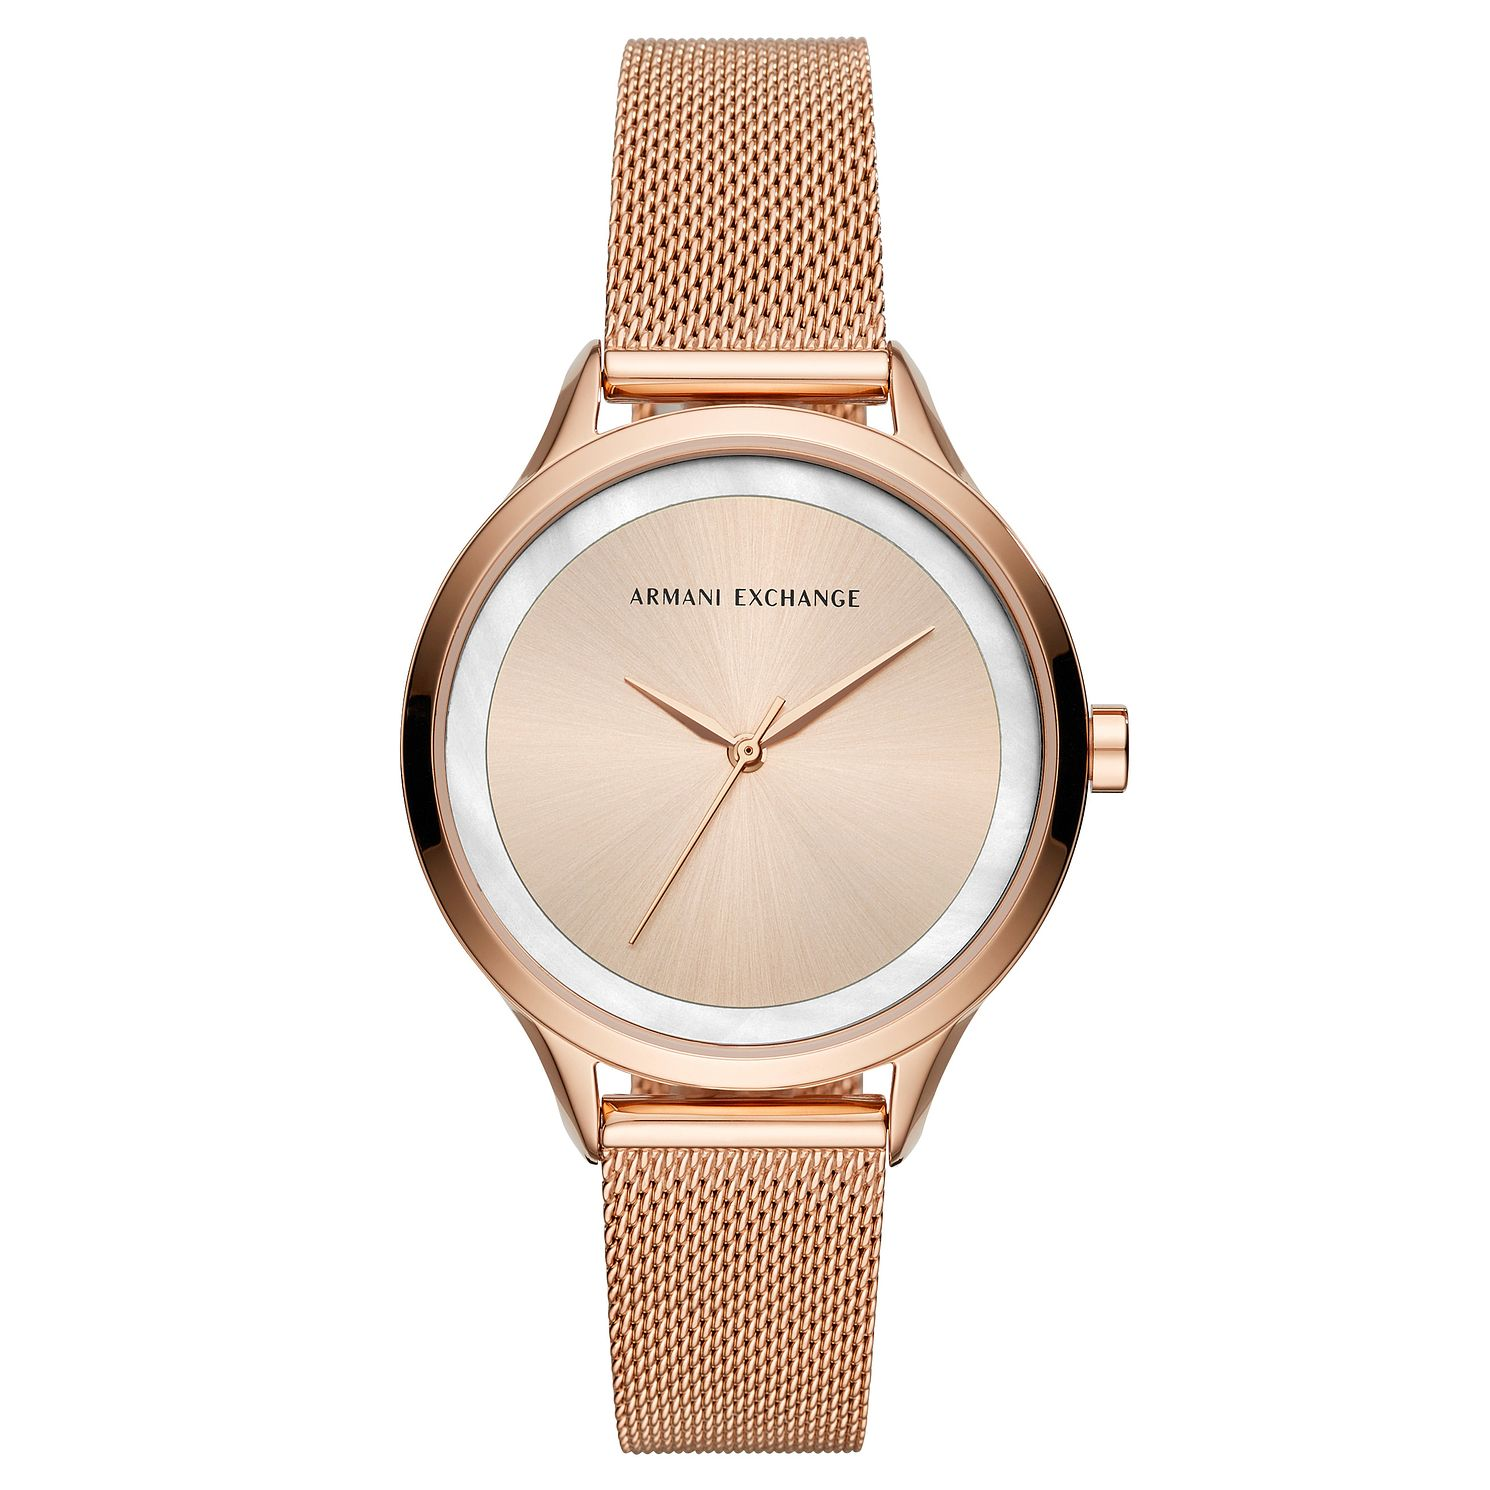 Armani Exchange Ladies' Rose Gold Tone Bracelet Watch - Product number 4172841